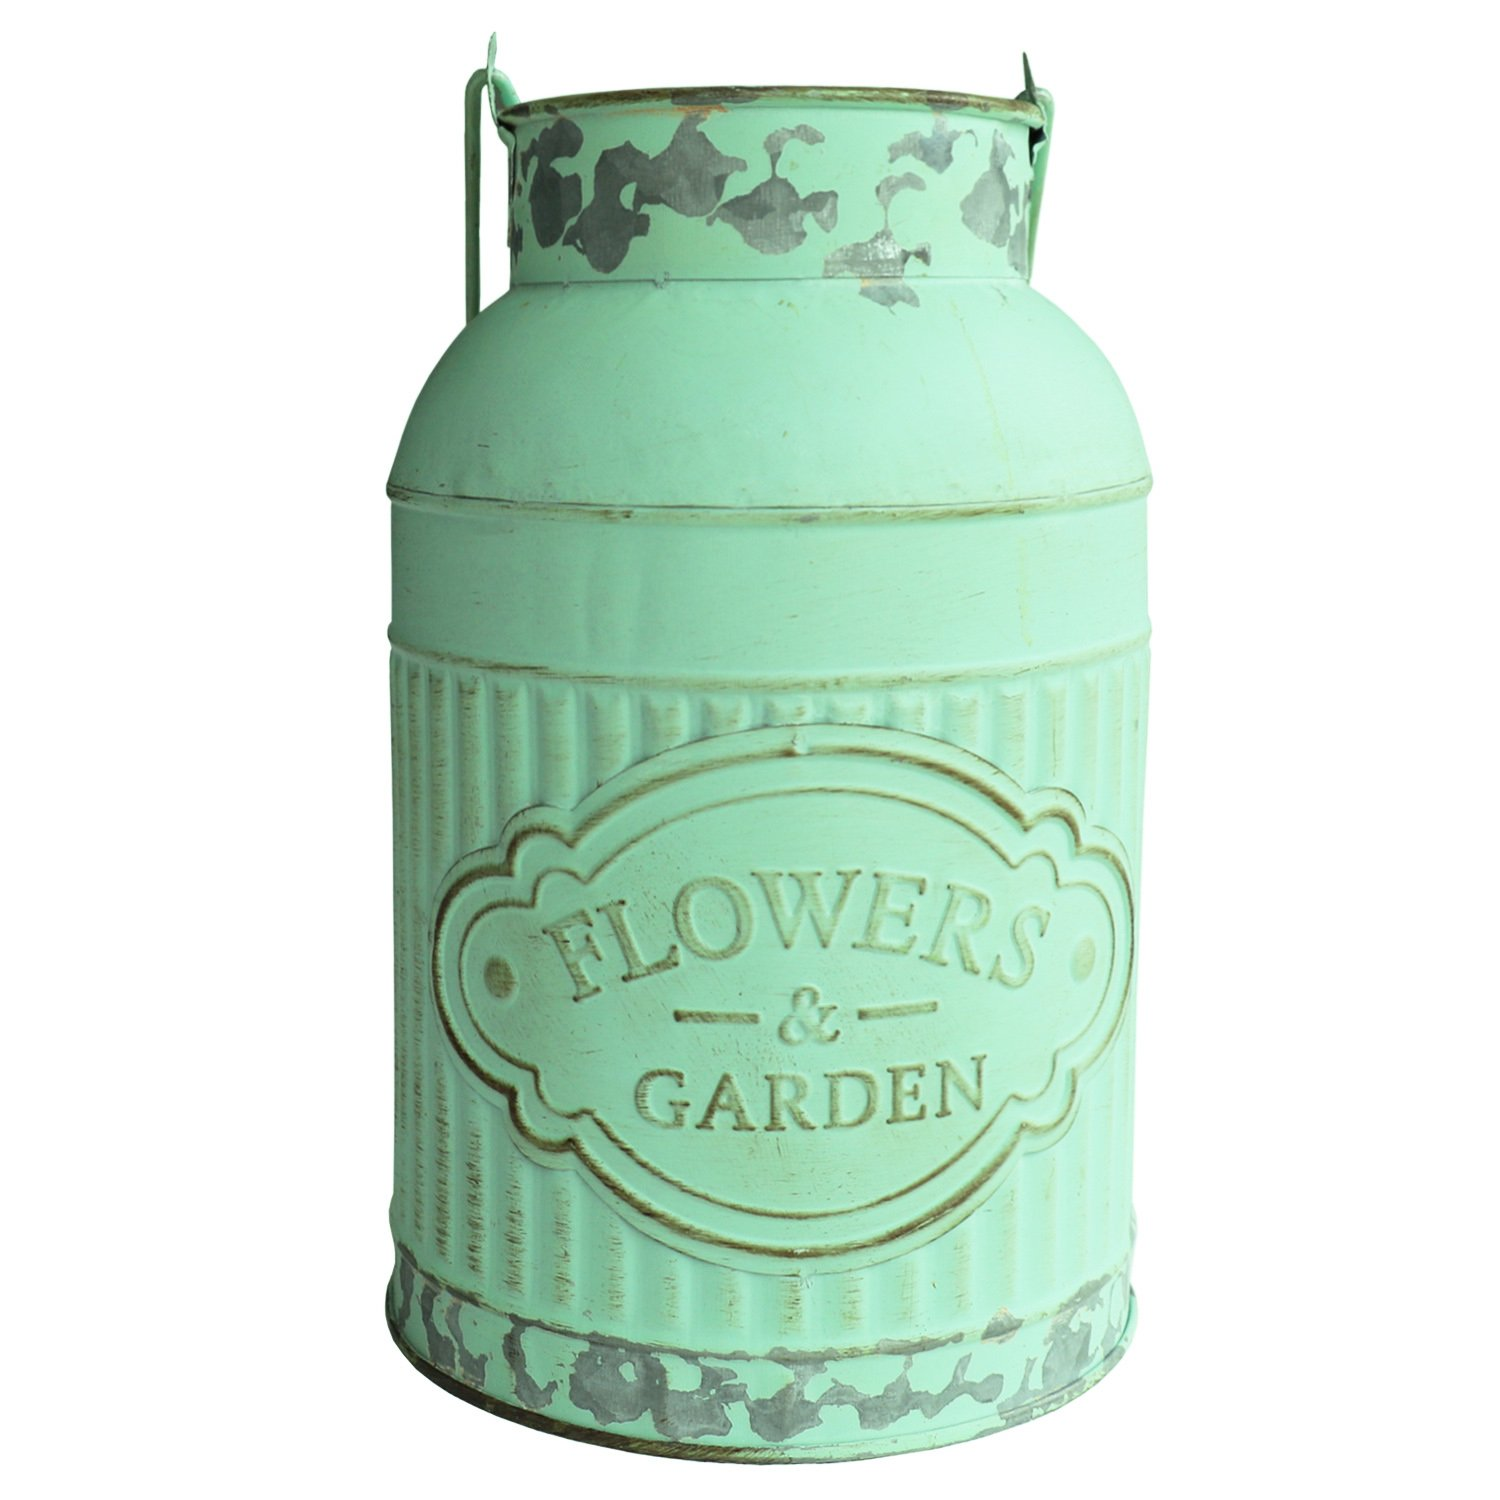 HyFanStr Shabby Chic Green Painted Milk Can Style Metal Vase Flower Pitcher Jug Pot by HyFanStr (Image #2)